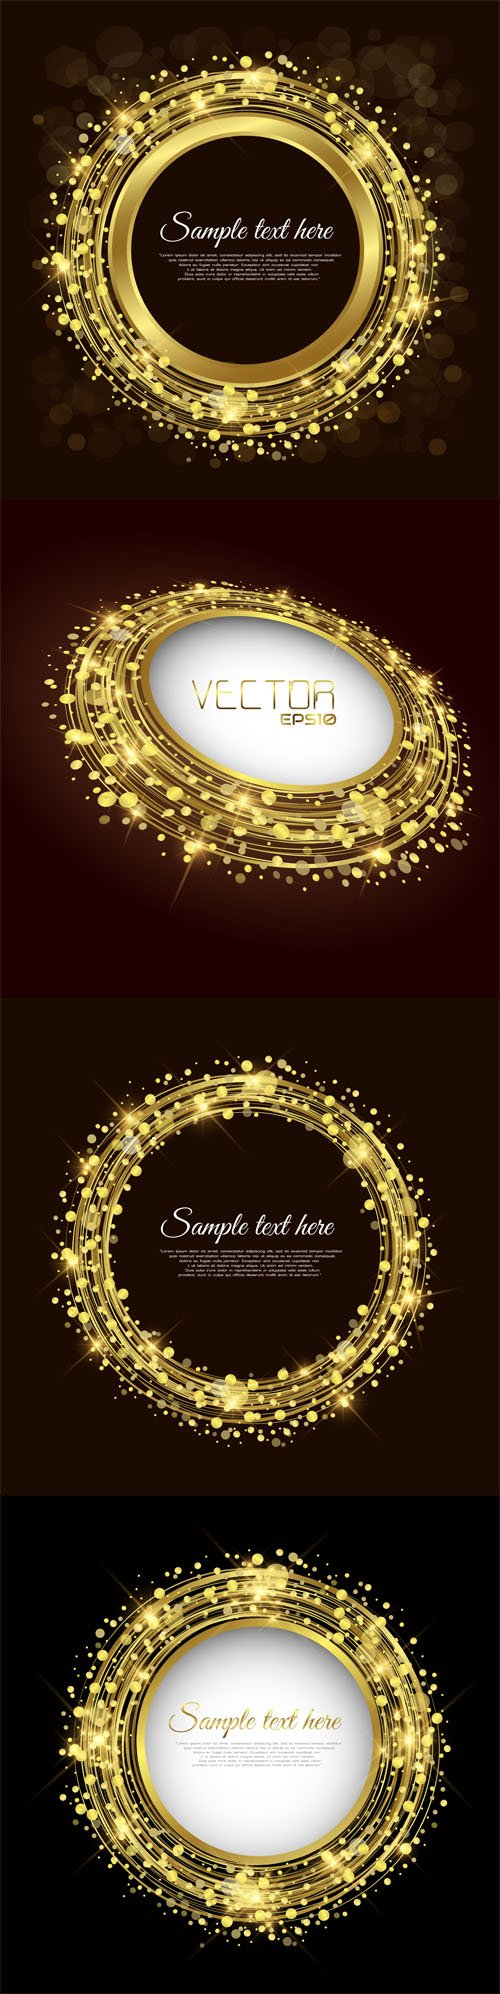 Gold Round Frames - Vector Clipart